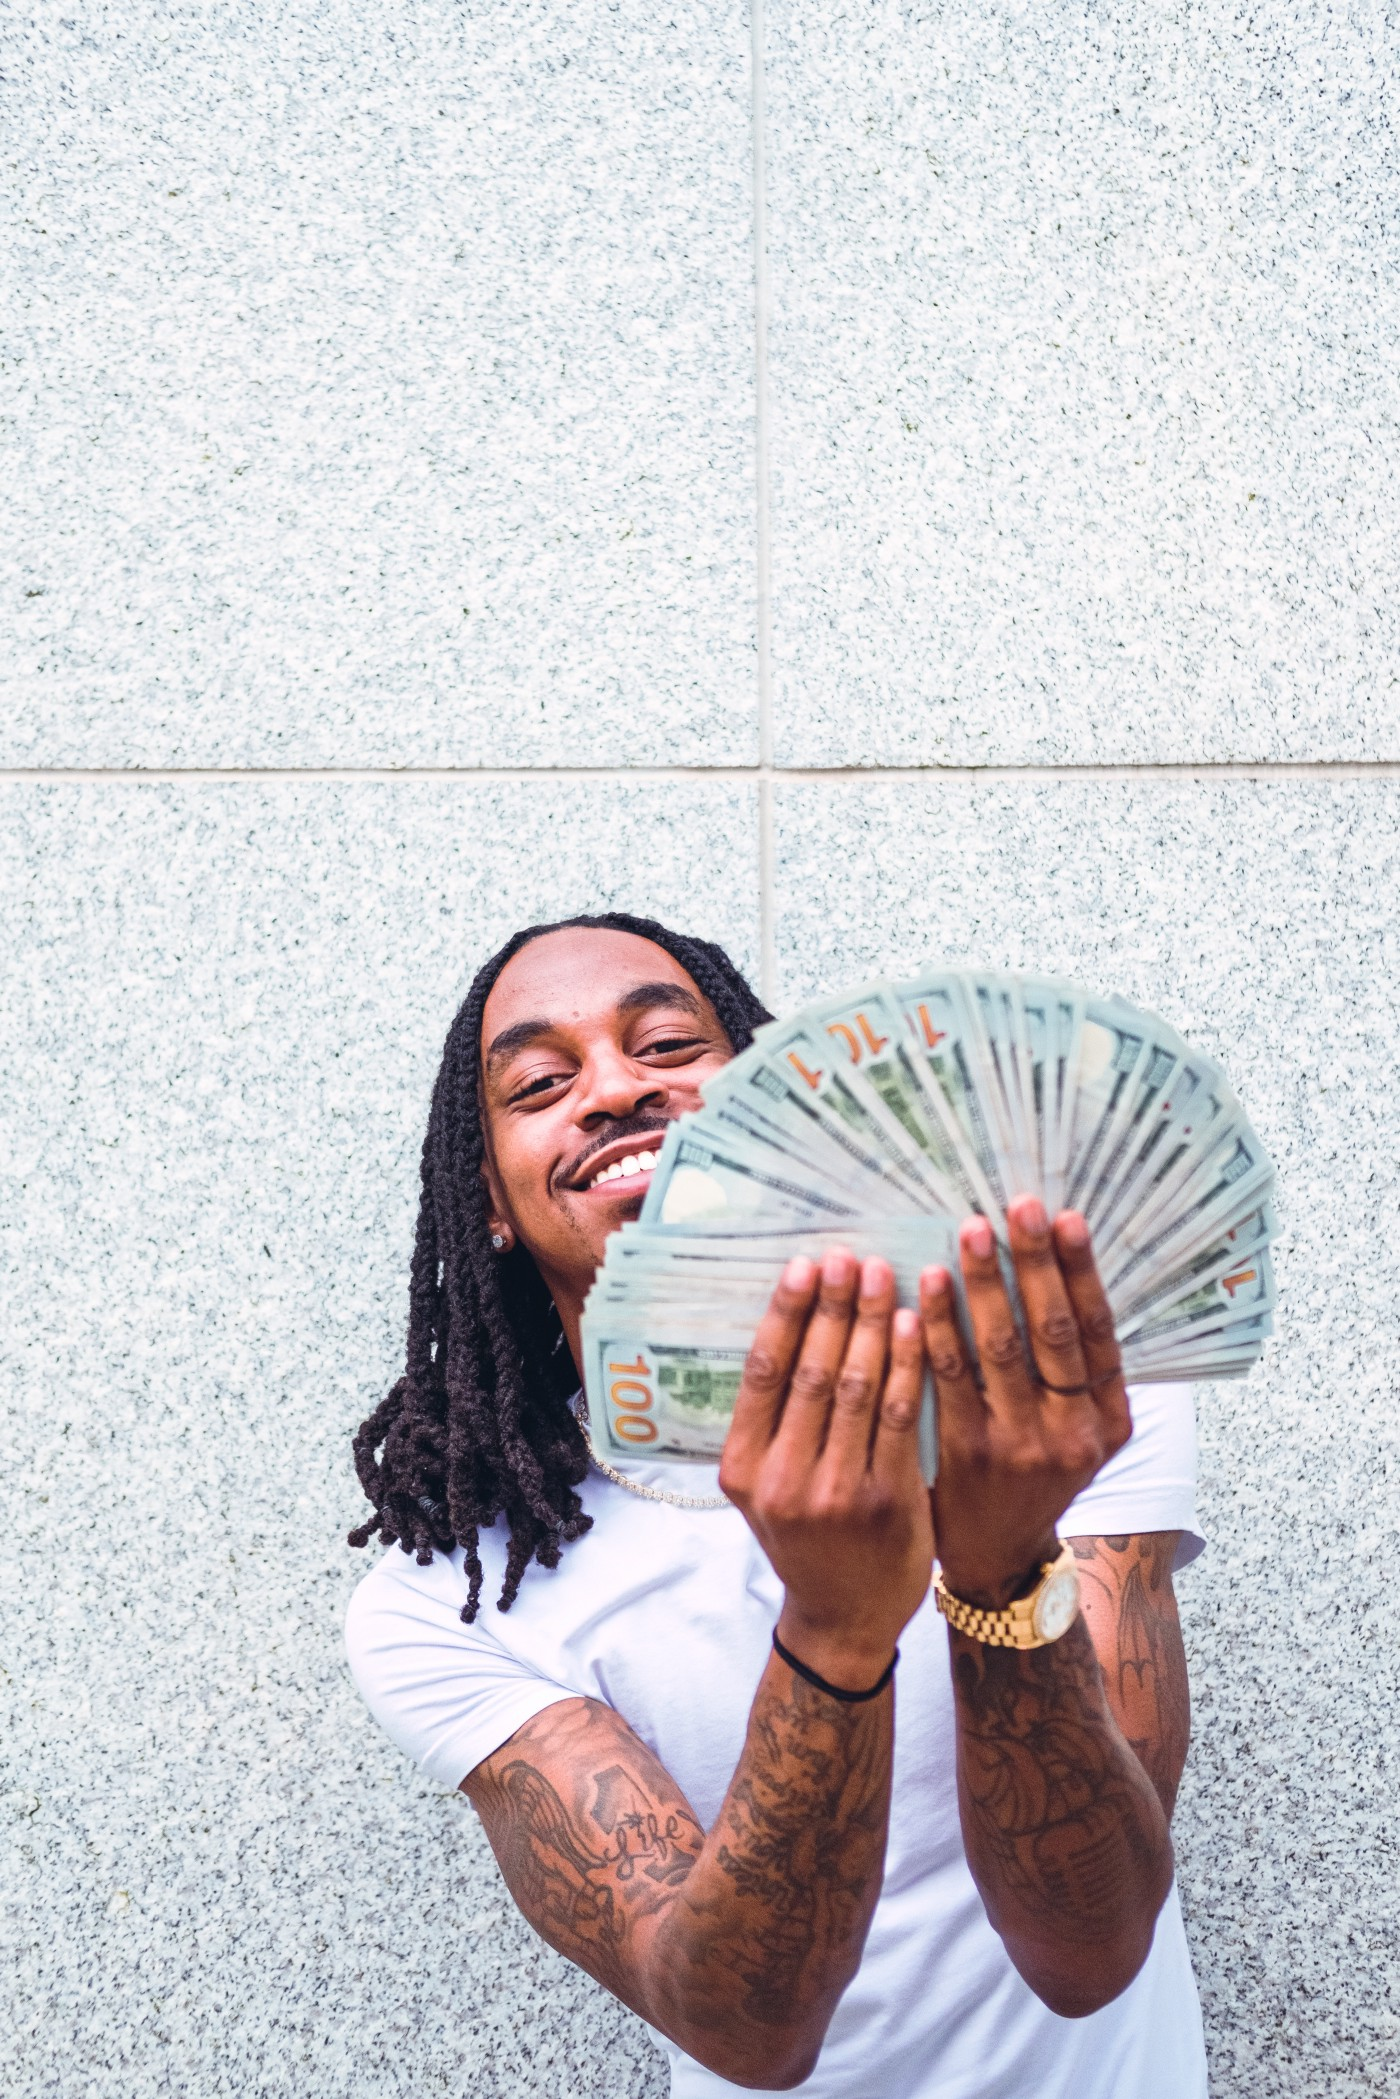 Attractive Black man with braided locs smiles while holding hundred dollars bills like a fan